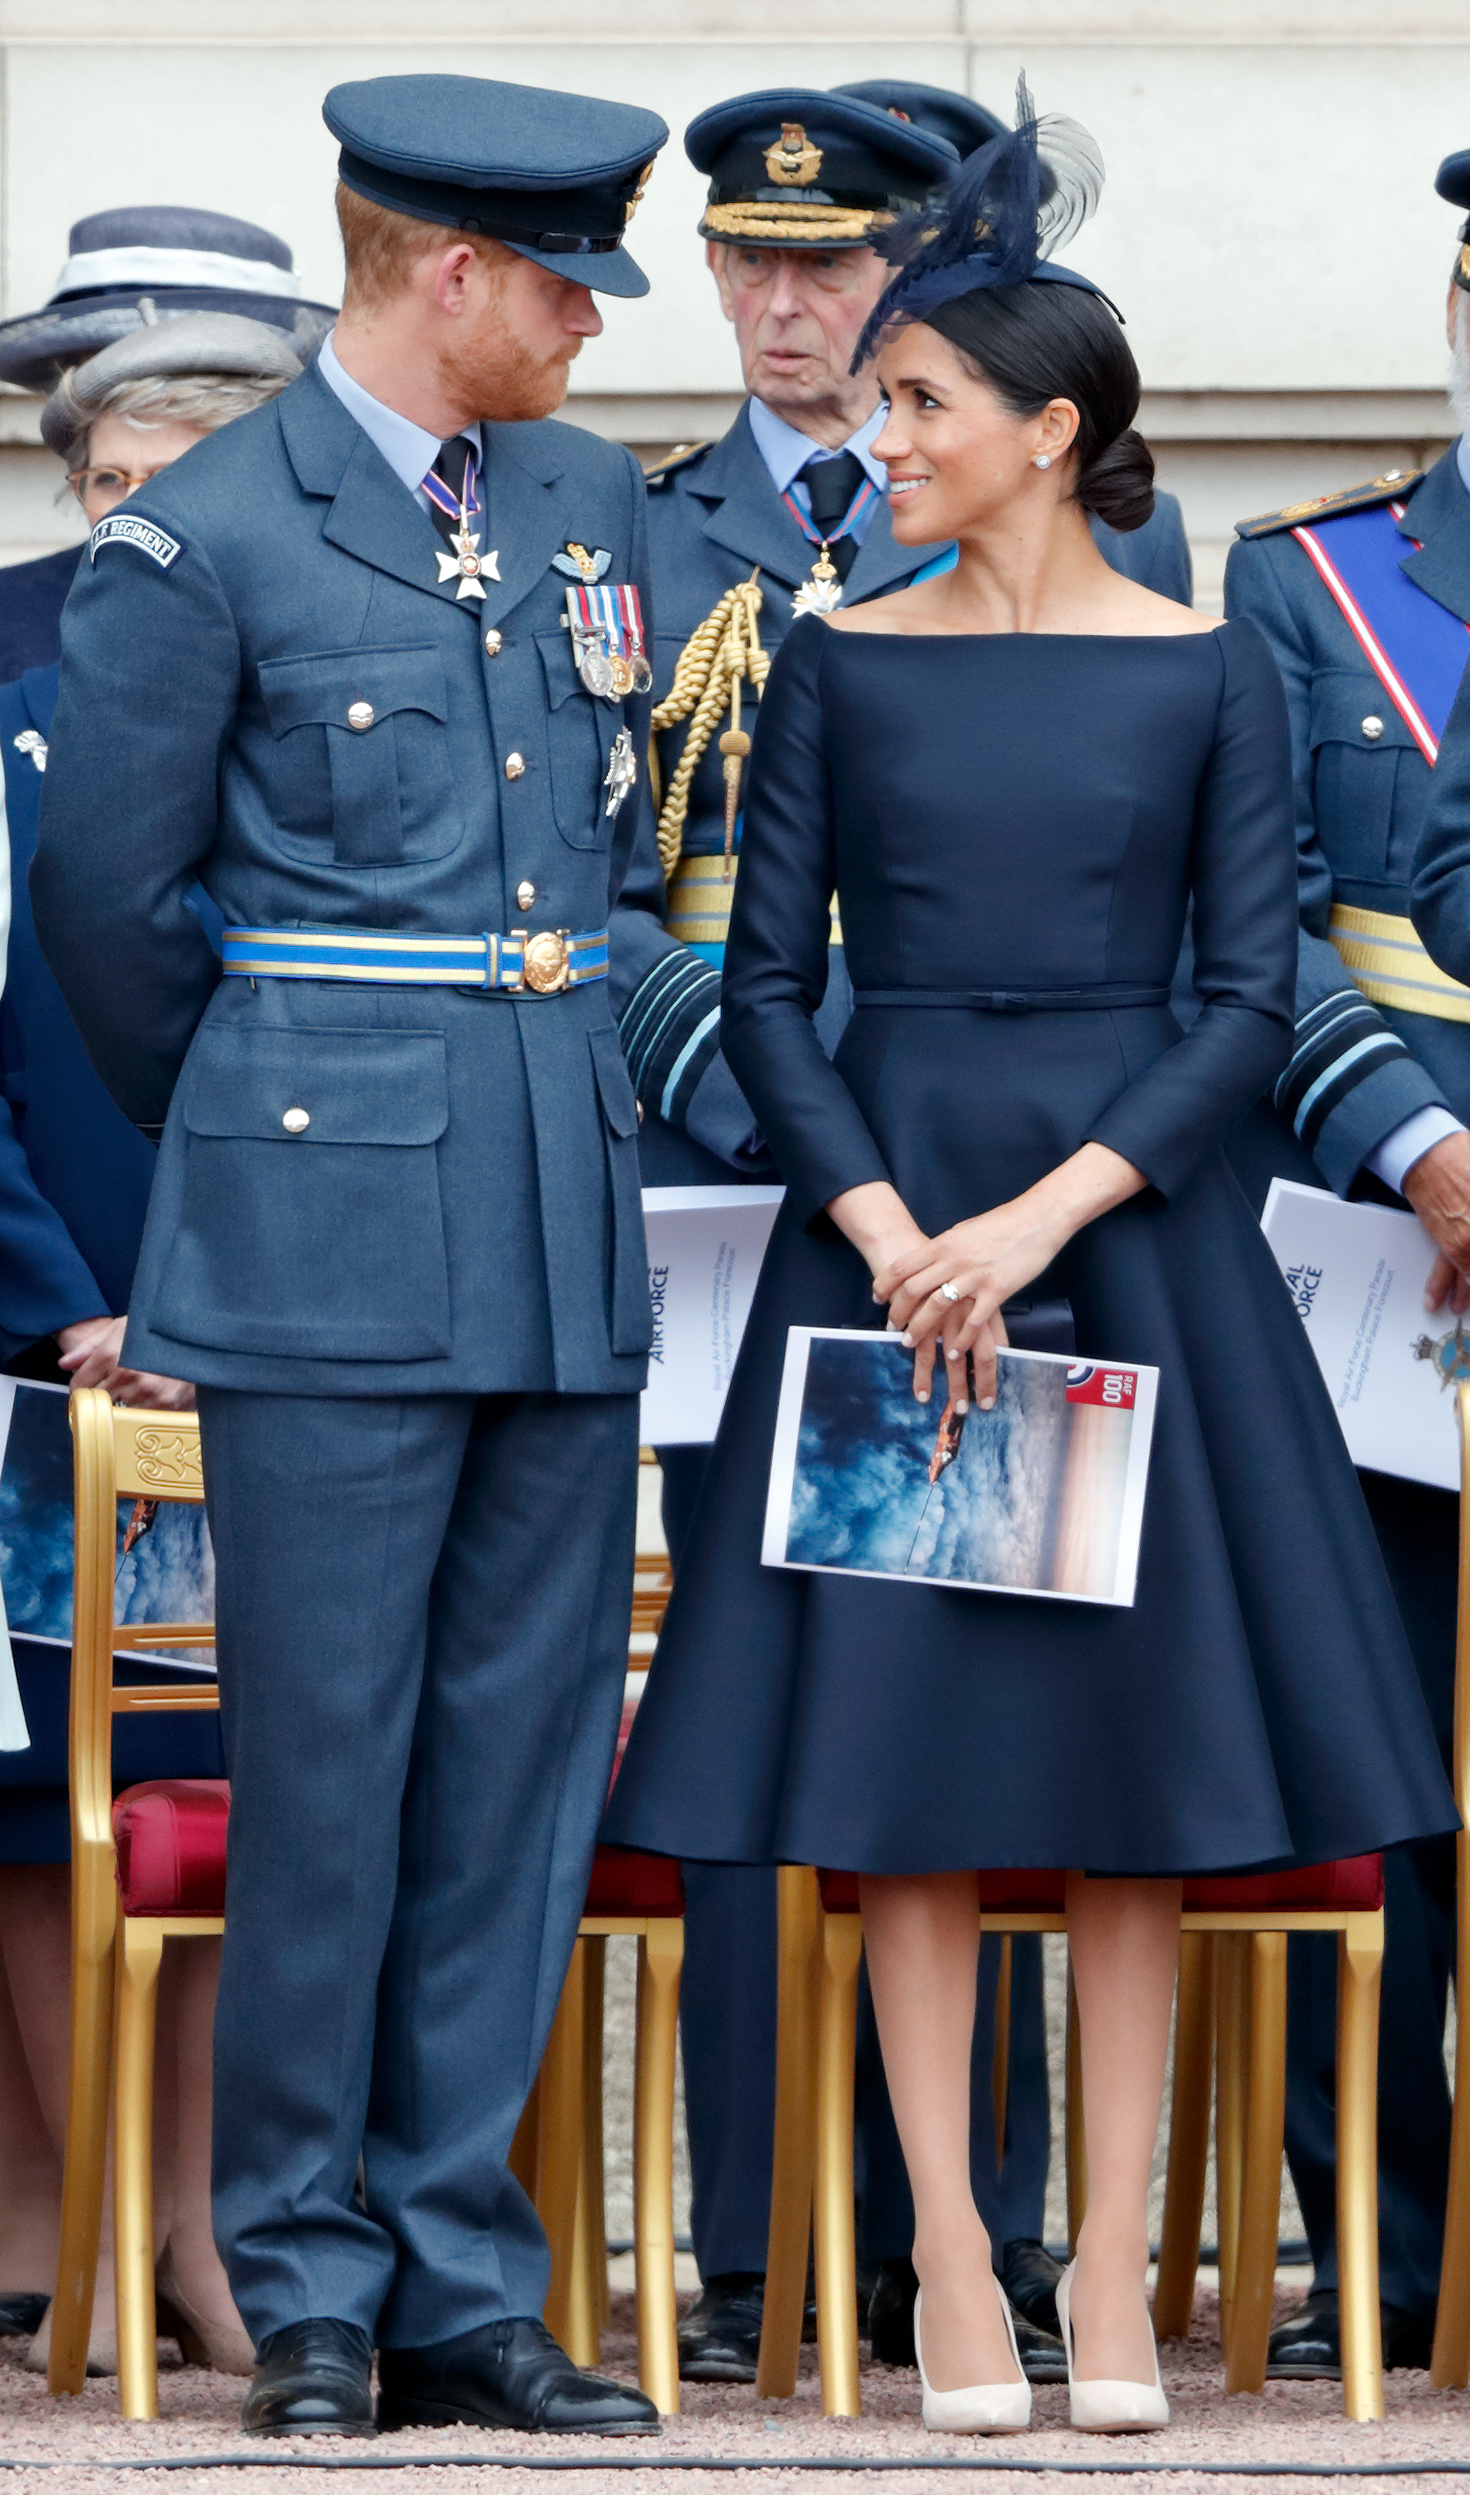 Prince Harry, Duke of Sussex and Meghan, Duchess of Sussex attend a ceremony to mark the centenary of the Royal Air Force on the forecourt of Buckingham Palace on July 10, 2018 in (Photo by Max Mumby/Indigo/Getty Images)